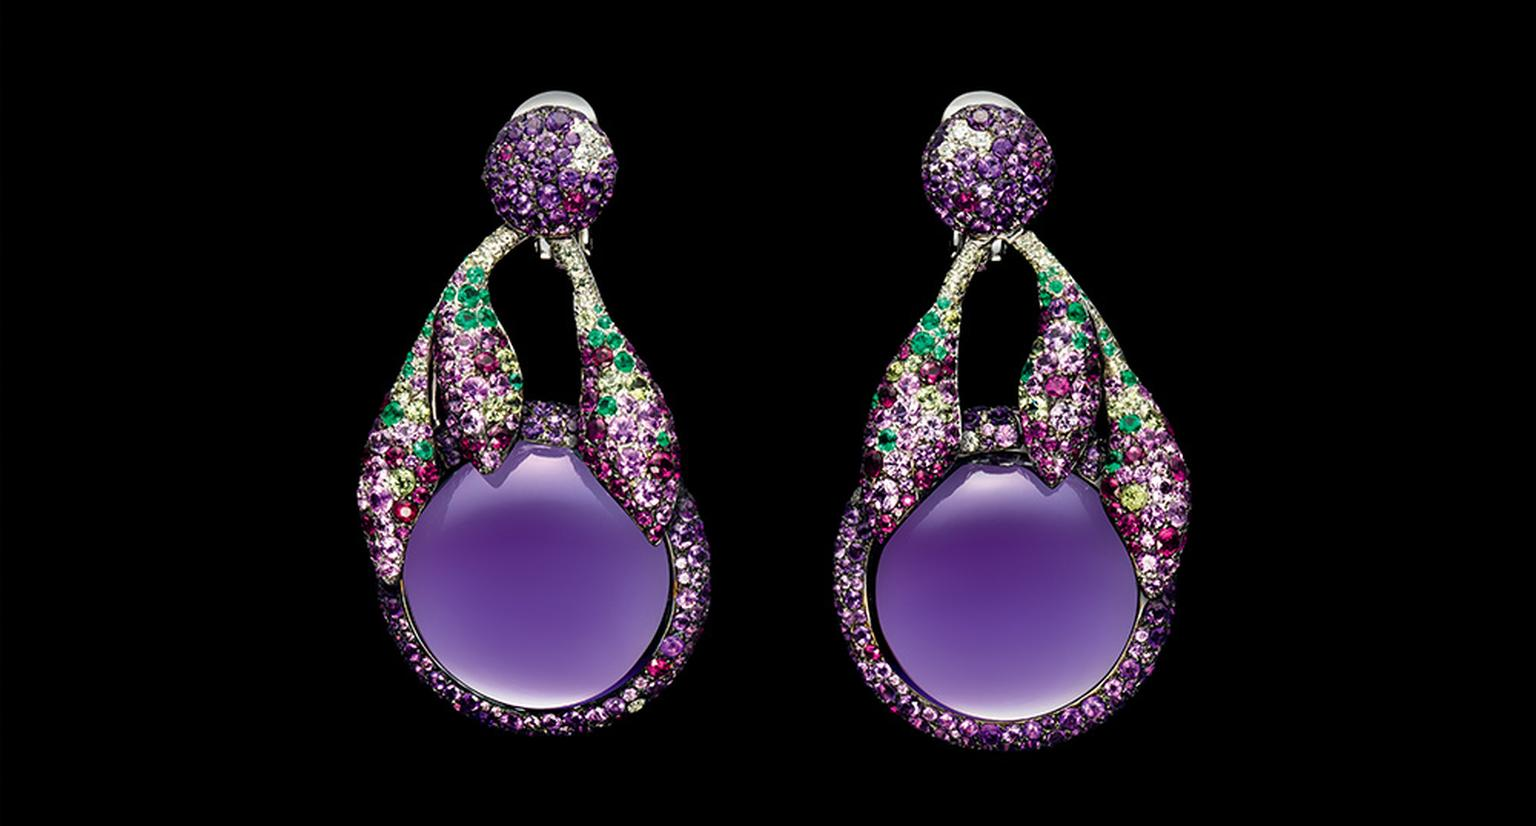 MELODY-OF-COLOURS-EARRINGS-de-GRISOGONO-10459-01